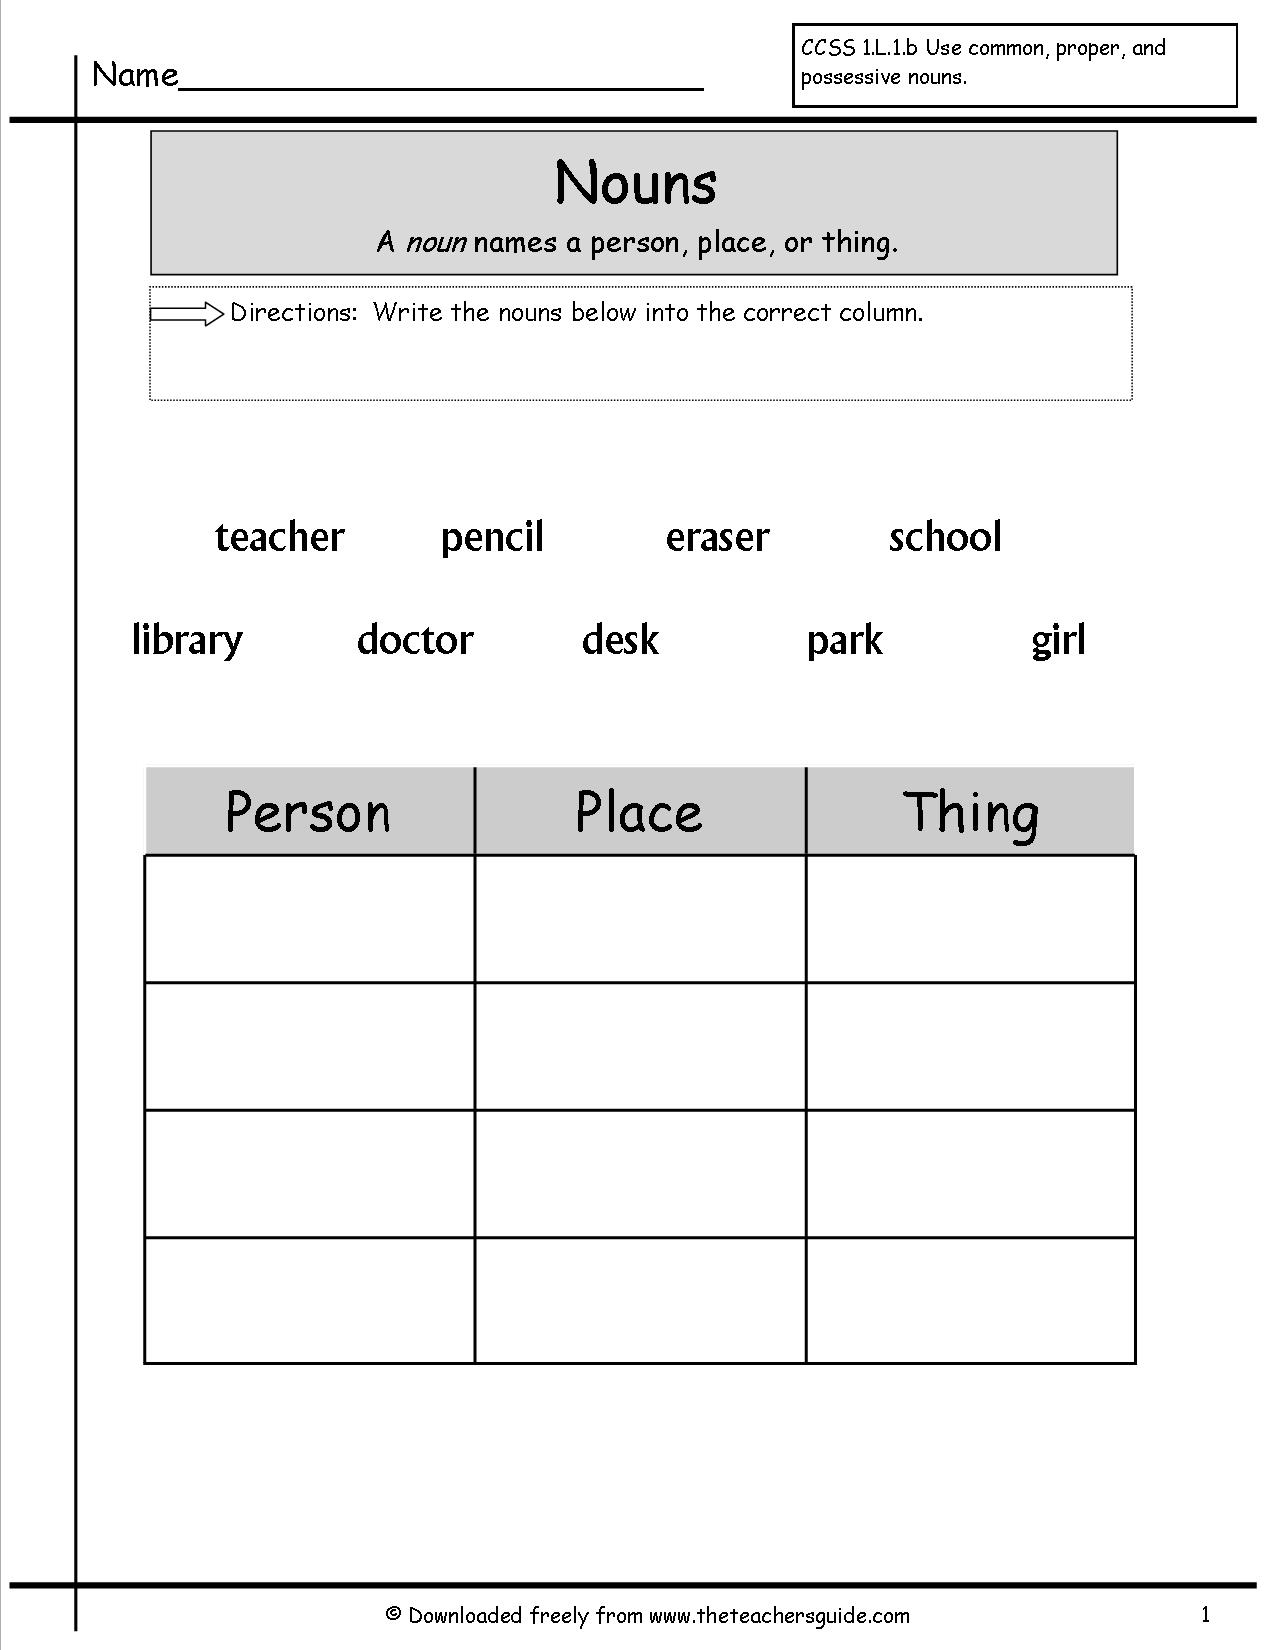 16 Best Images Of Language Worksheets For 4th Grade